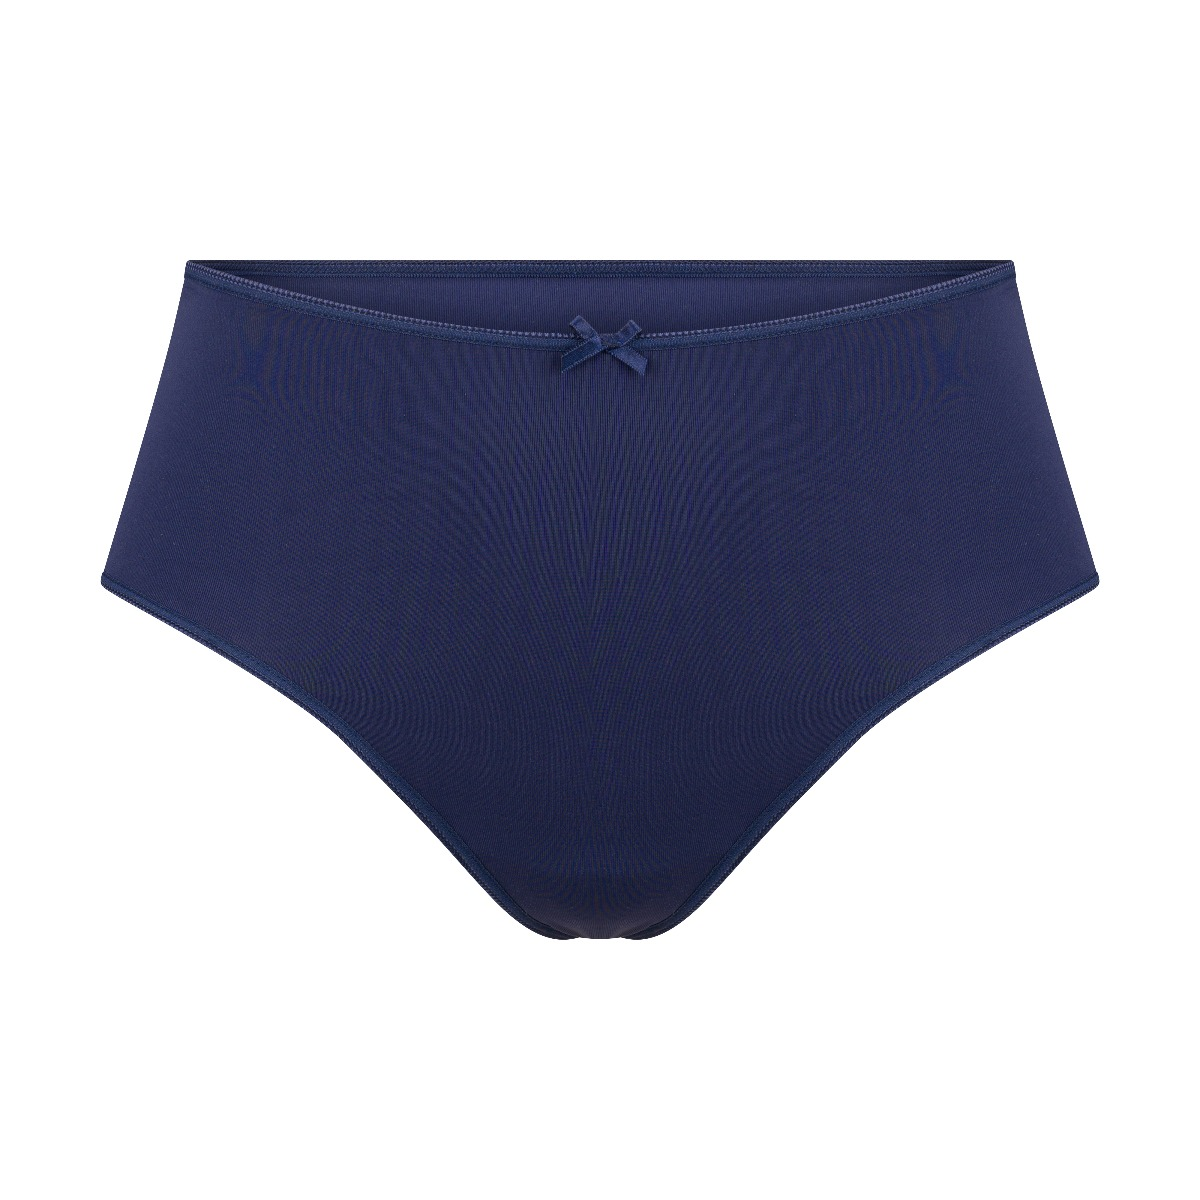 RJ Pure Color Dames String Extra Hoog Donkerblauw M